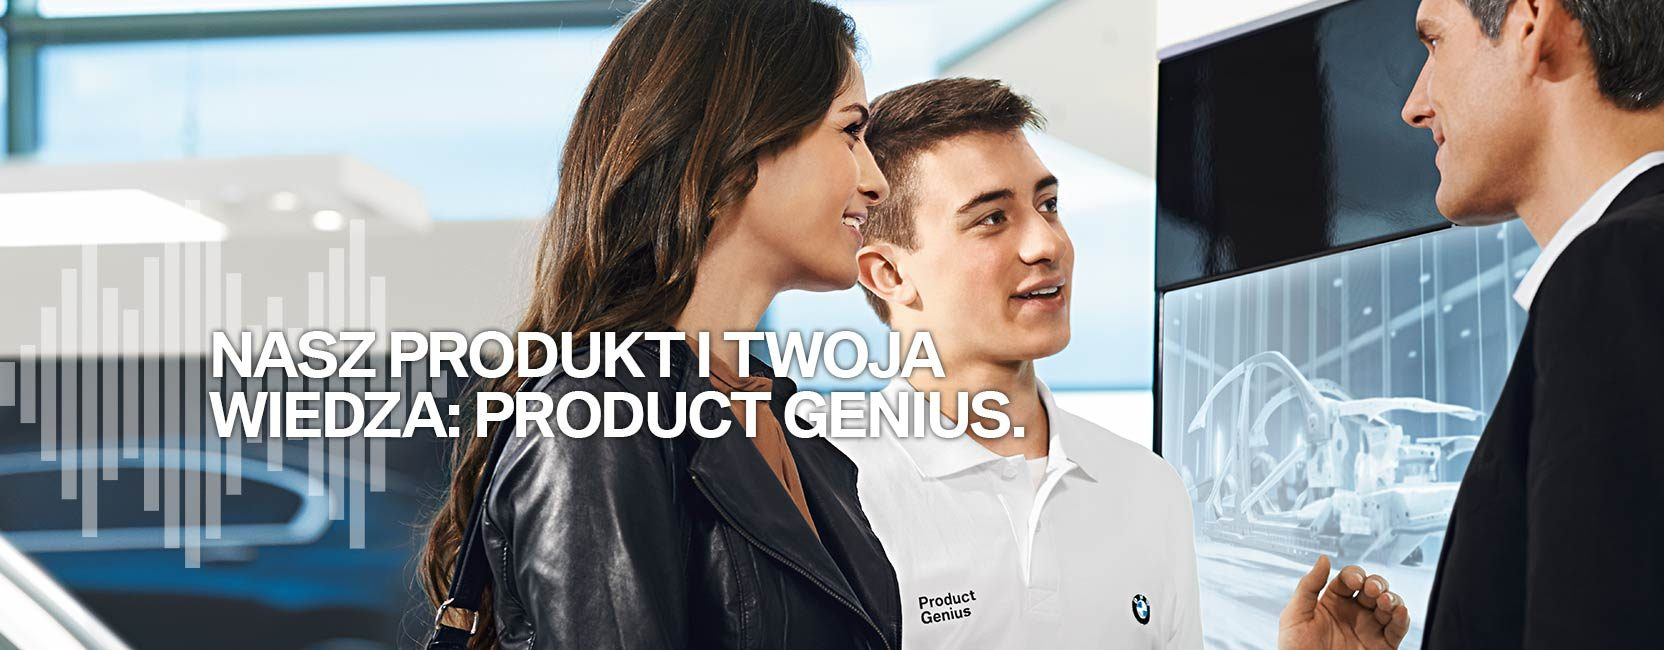 Product Genius BMW